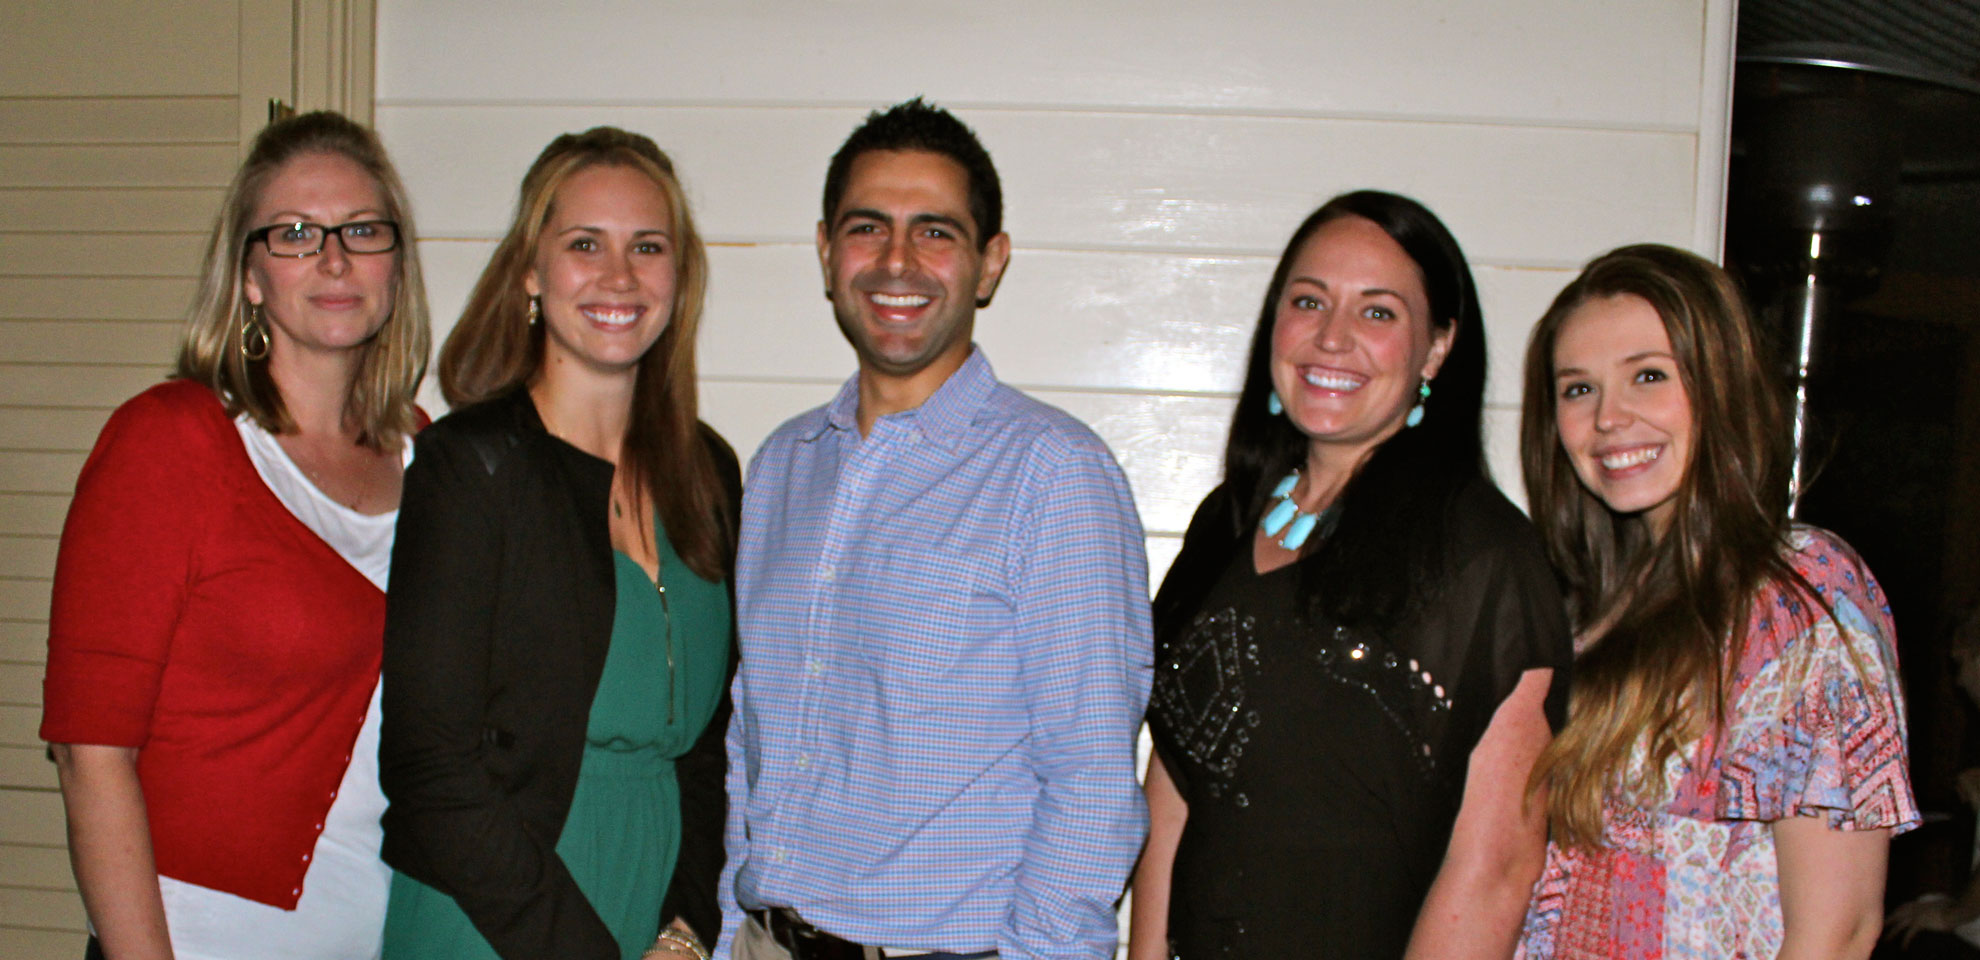 The team at Rouse Hill Chiropractics